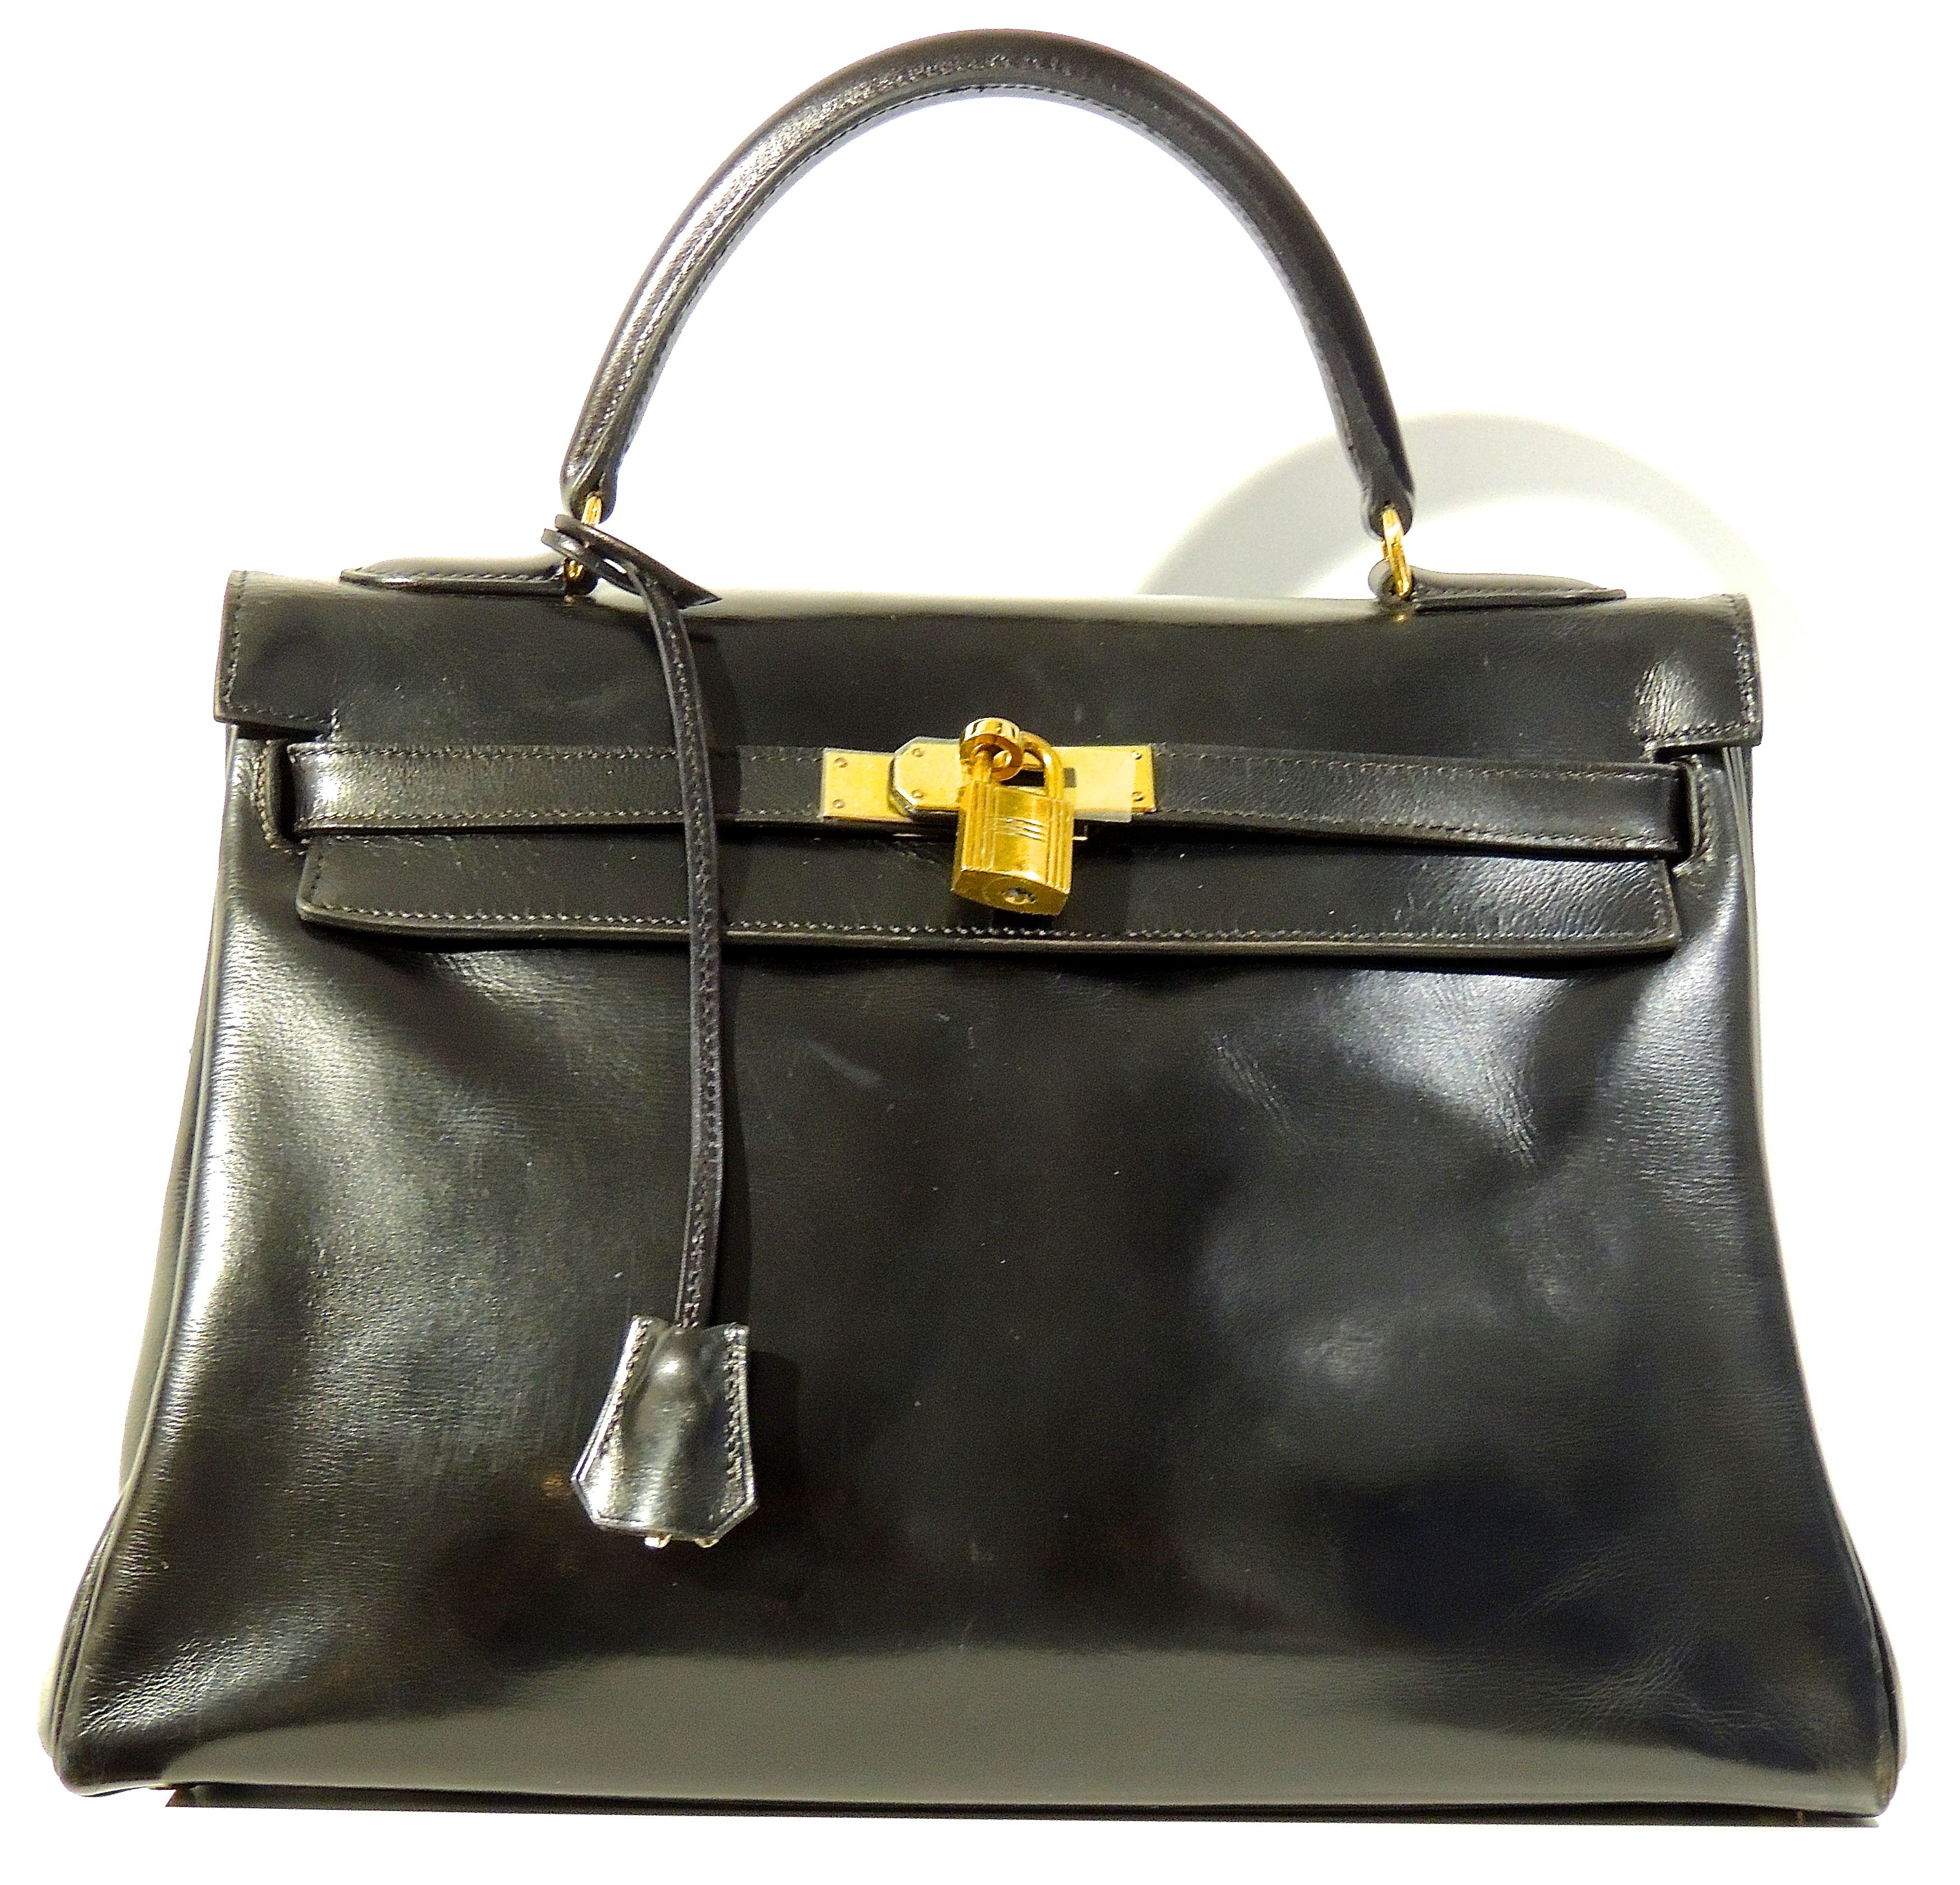 ... size in where can i buy vtg auth hermes kelly bag 32 on vintage  eclectic eye ebay shop ... 12c693ed6be89